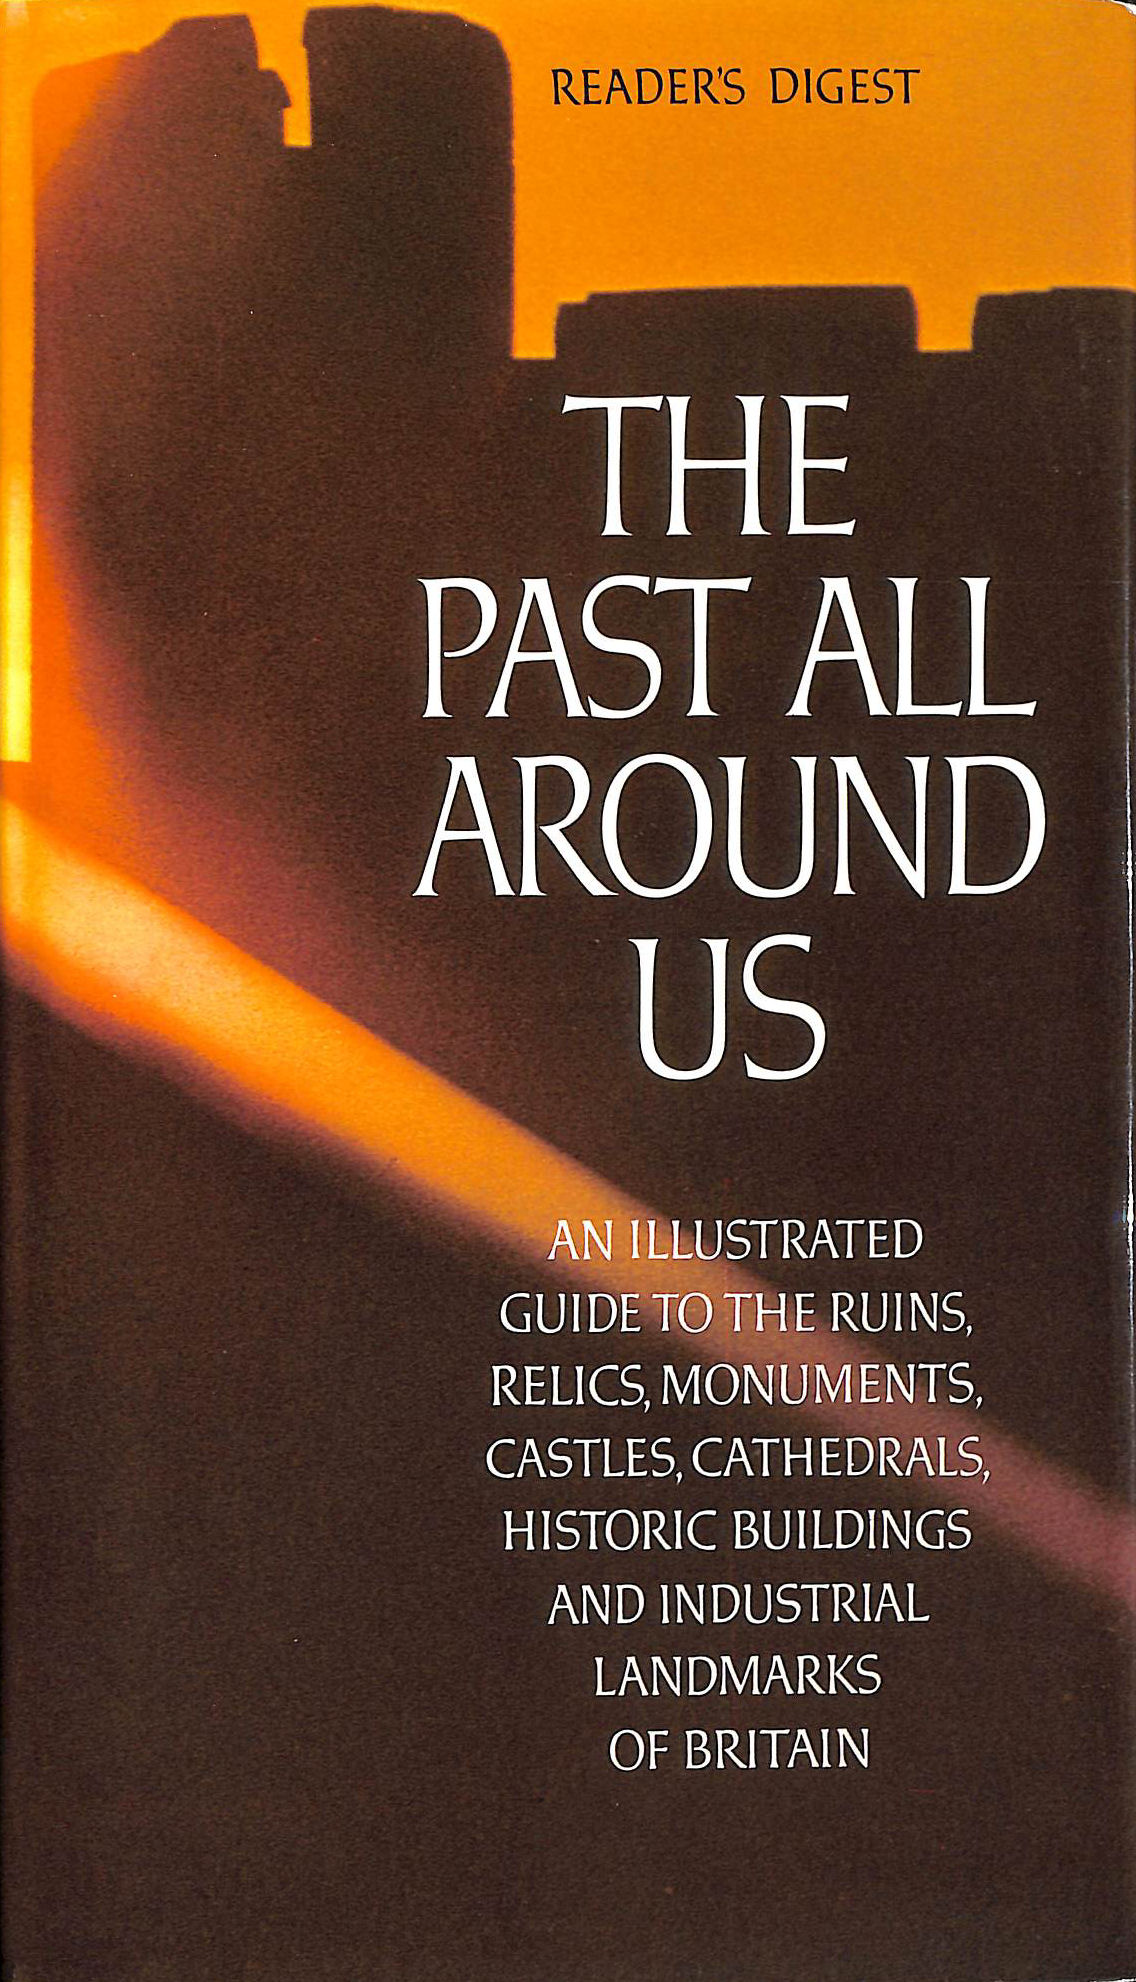 Image for Past All Around Us, The; An Illustrated Guide To The Ruins, Relics, Monuments, Castles, Cathedrals, Historic Buildings And Industrial Landmarks Of Britain.